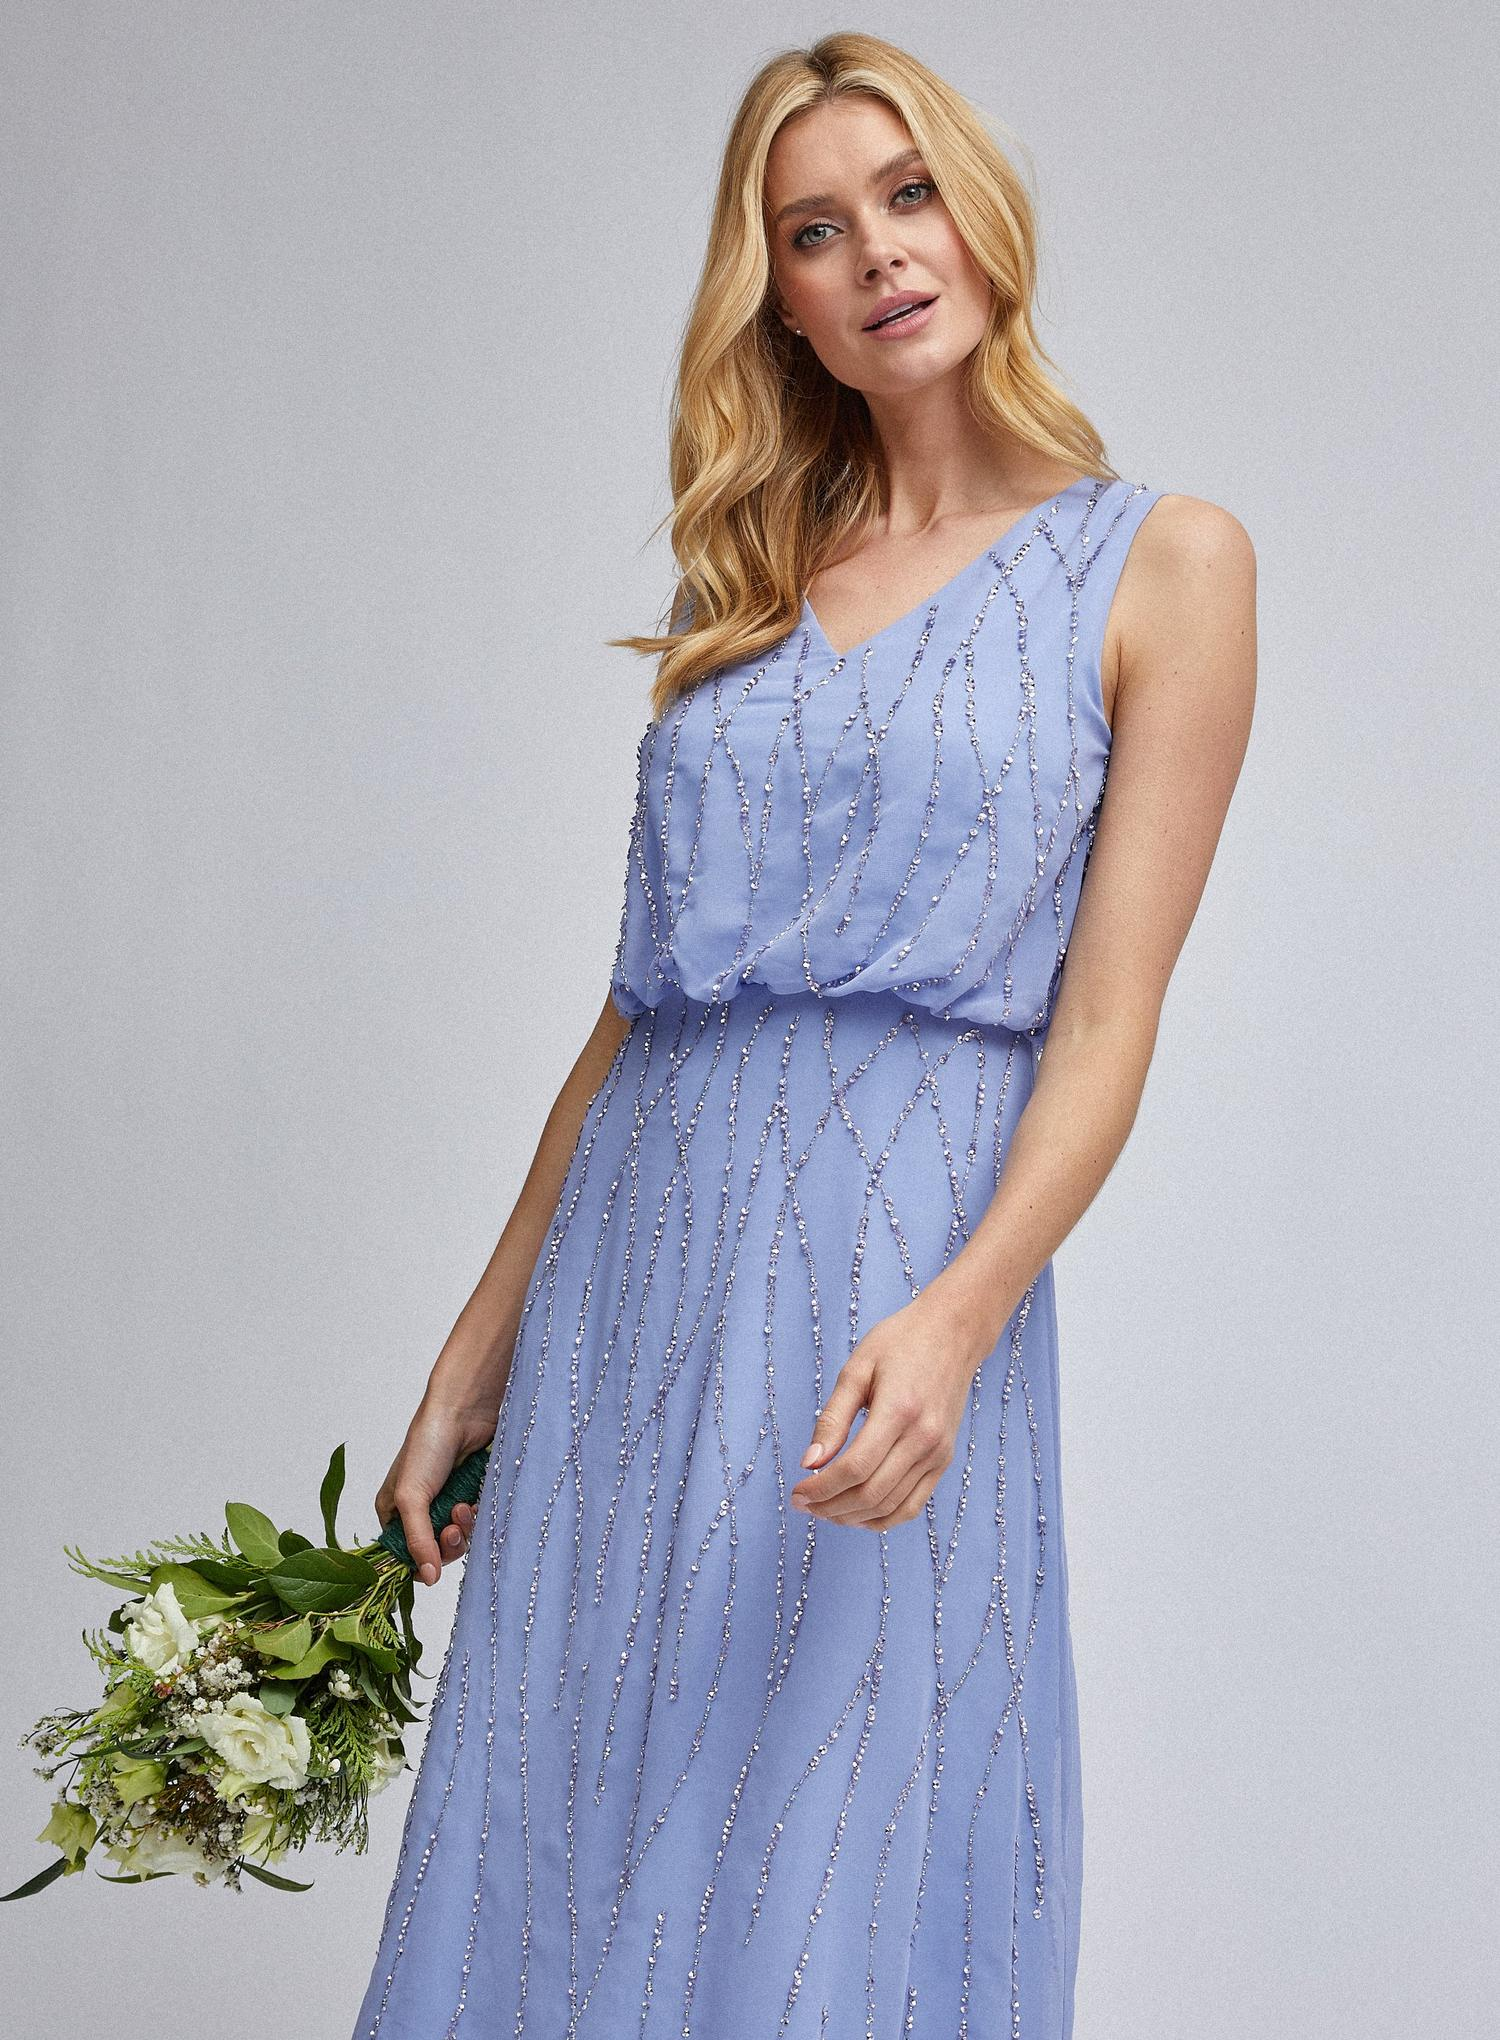 106 Cornflower Morgan Maxi Dress image number 4